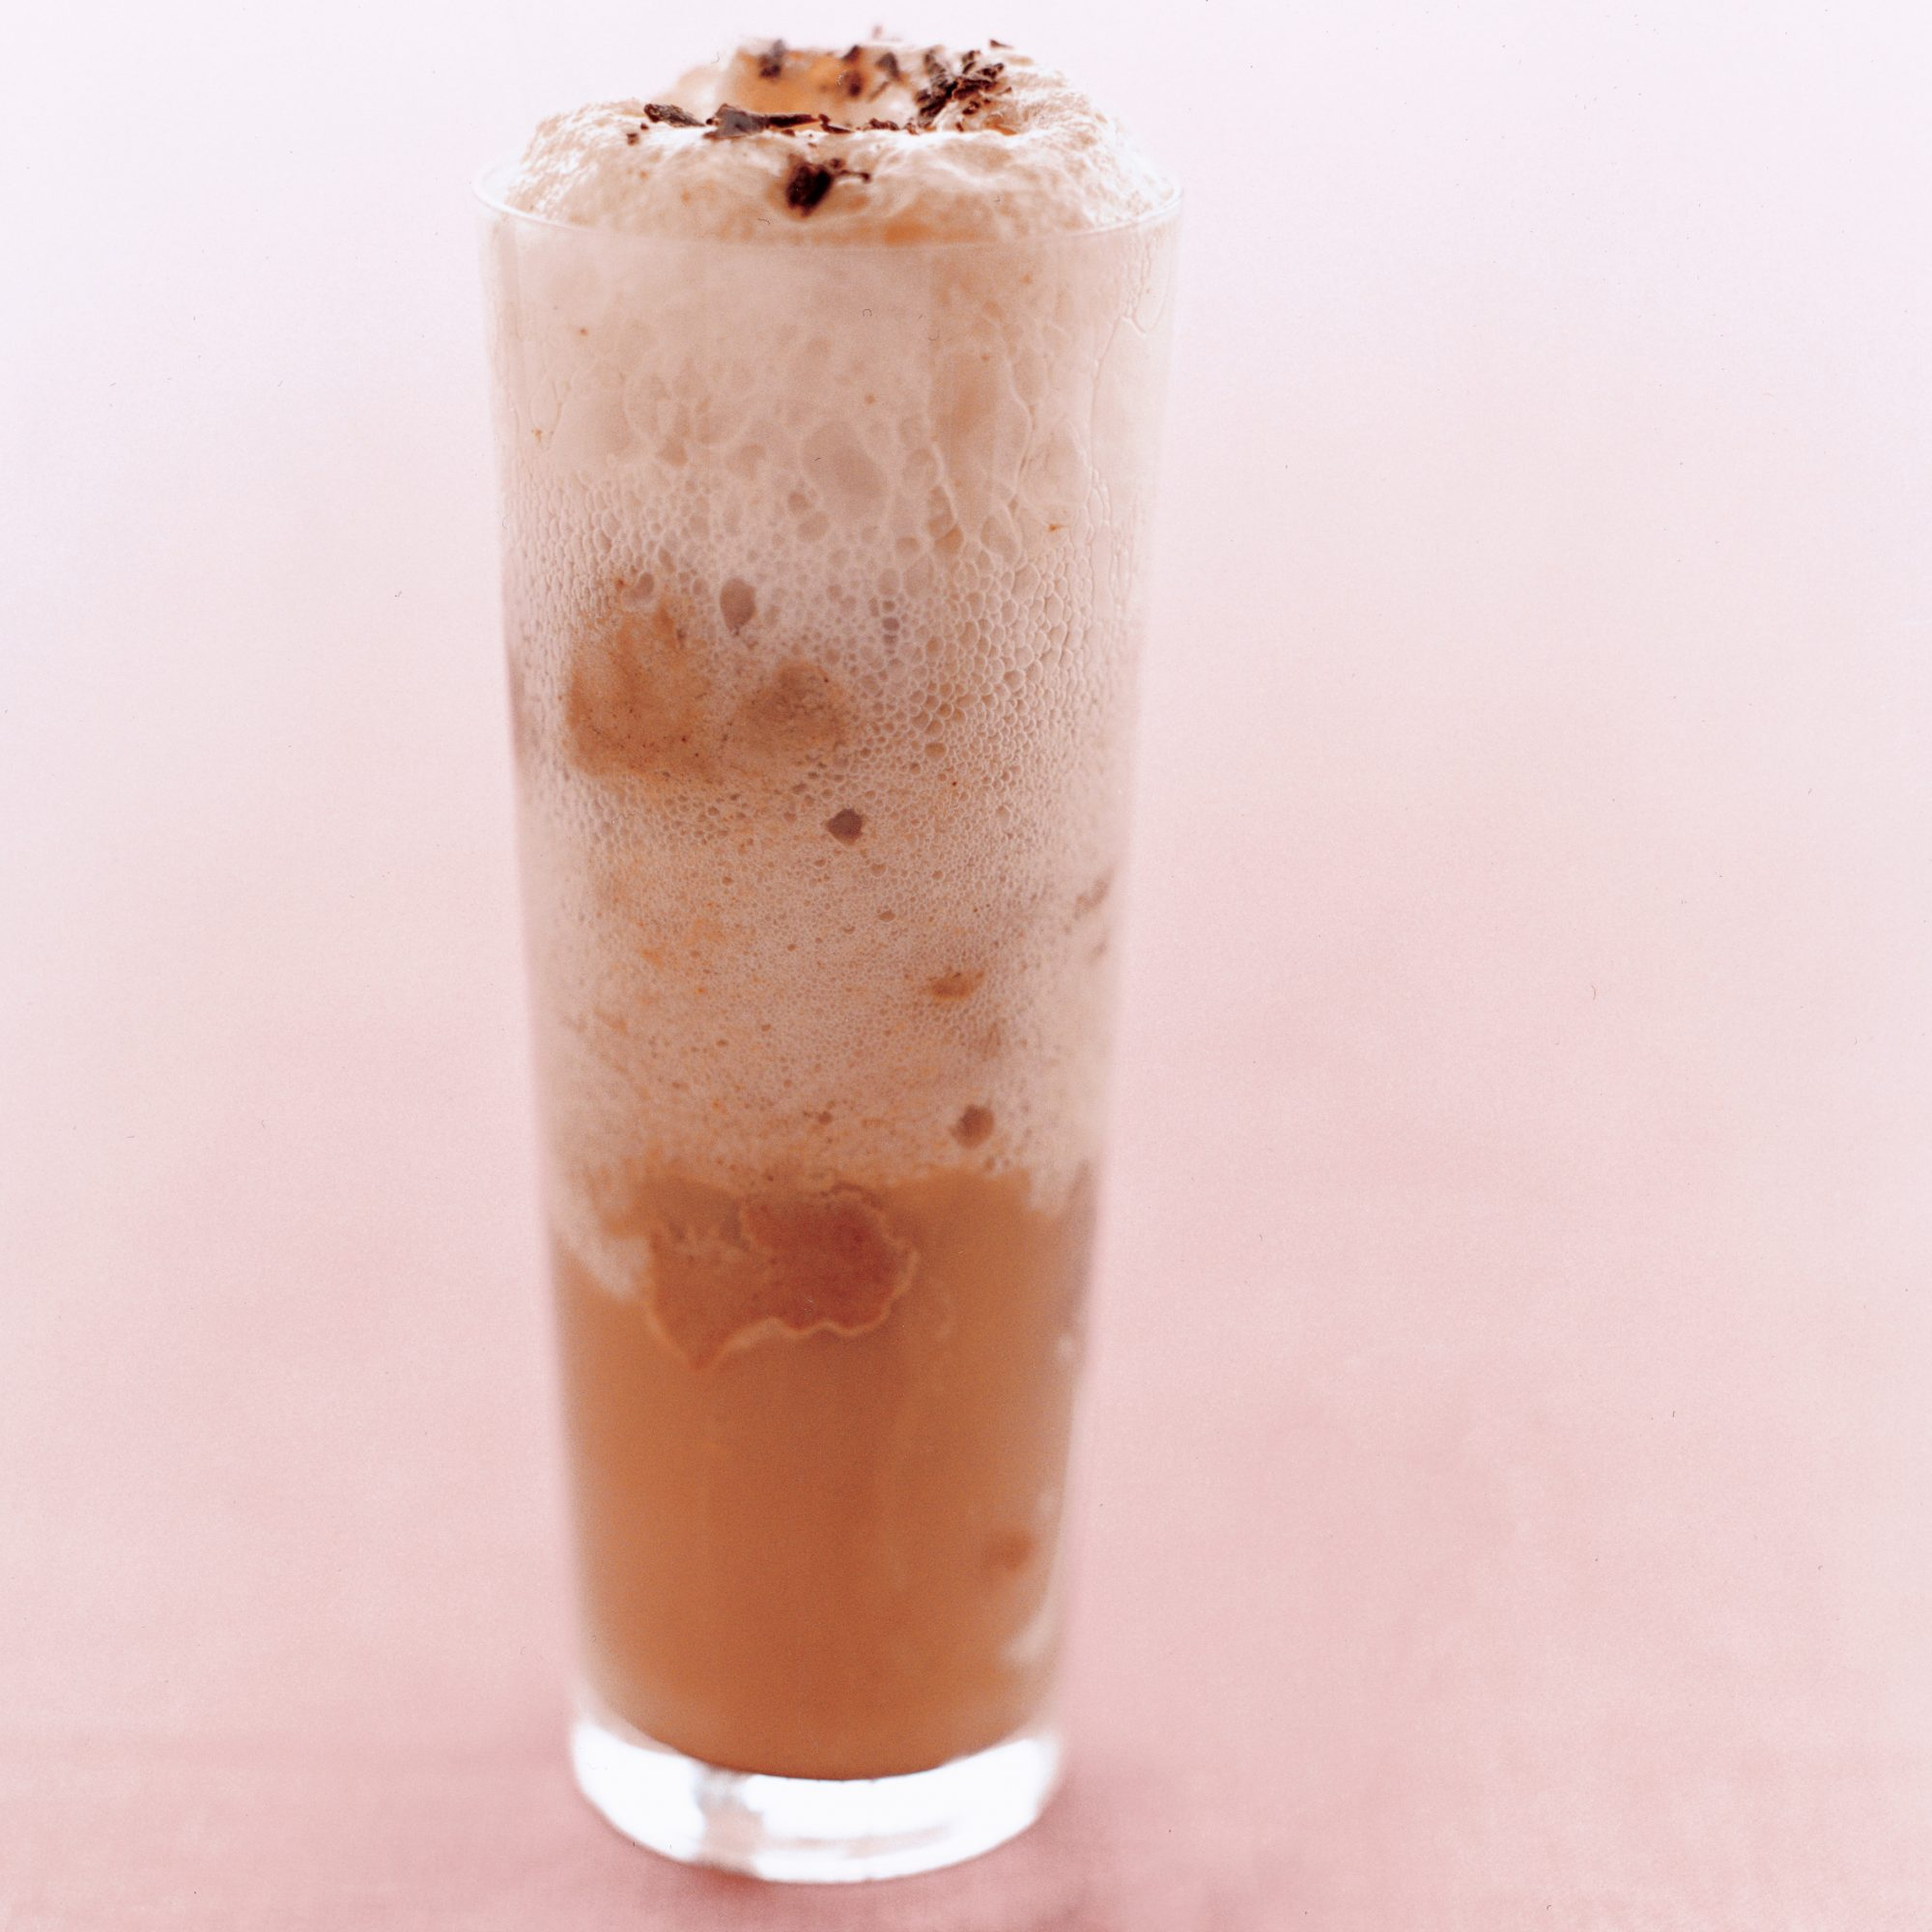 Cinnamon-Spiced Mocha Floats